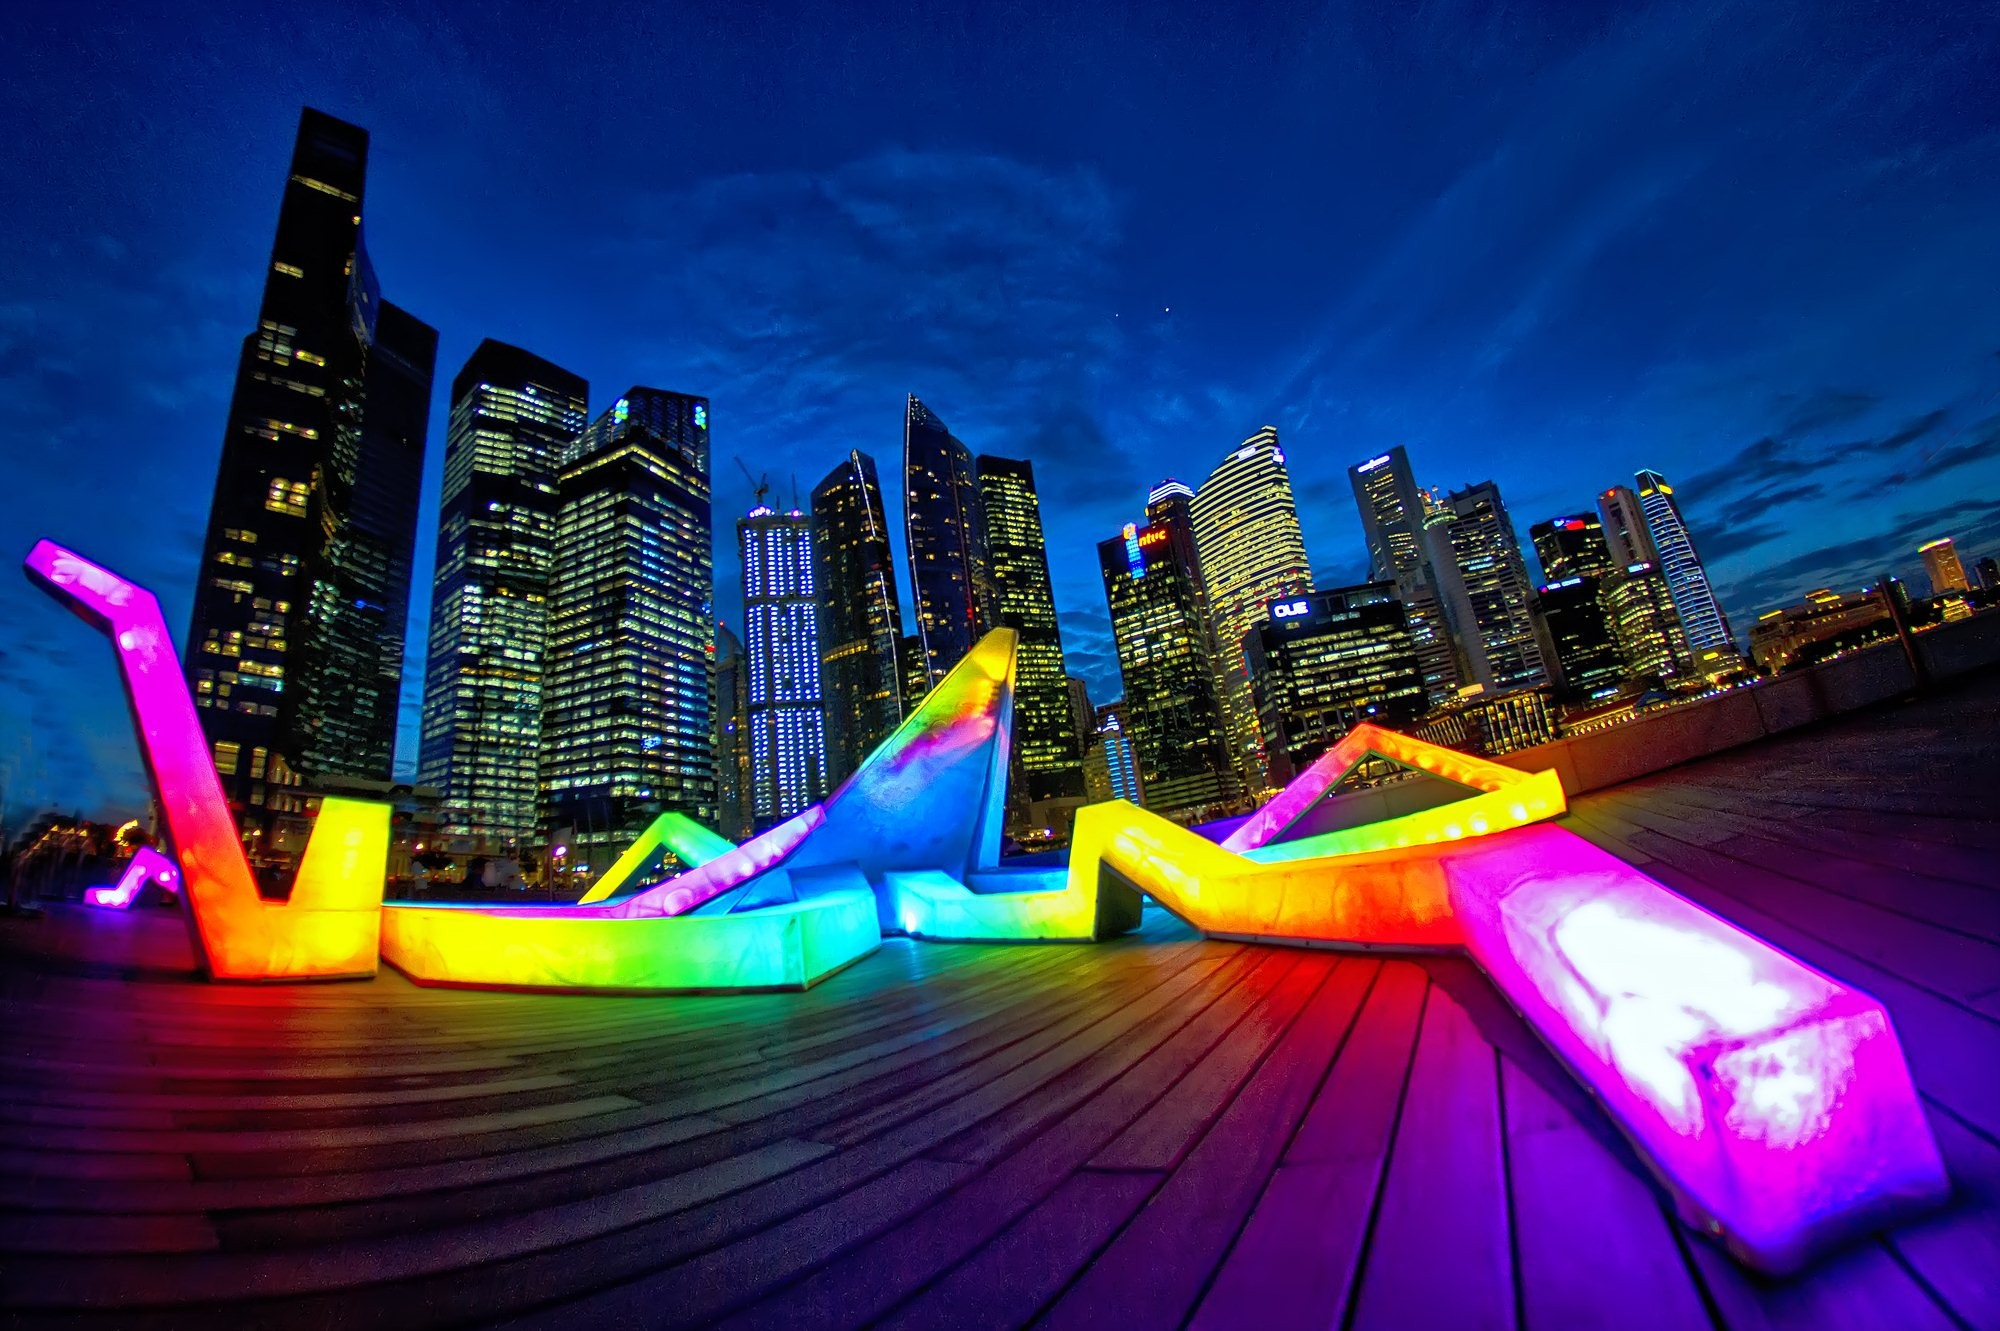 Light Matters: Europe's Leading Light Festivals, Light Marina Bay. Singapore, 2012. Image © Darren Chin